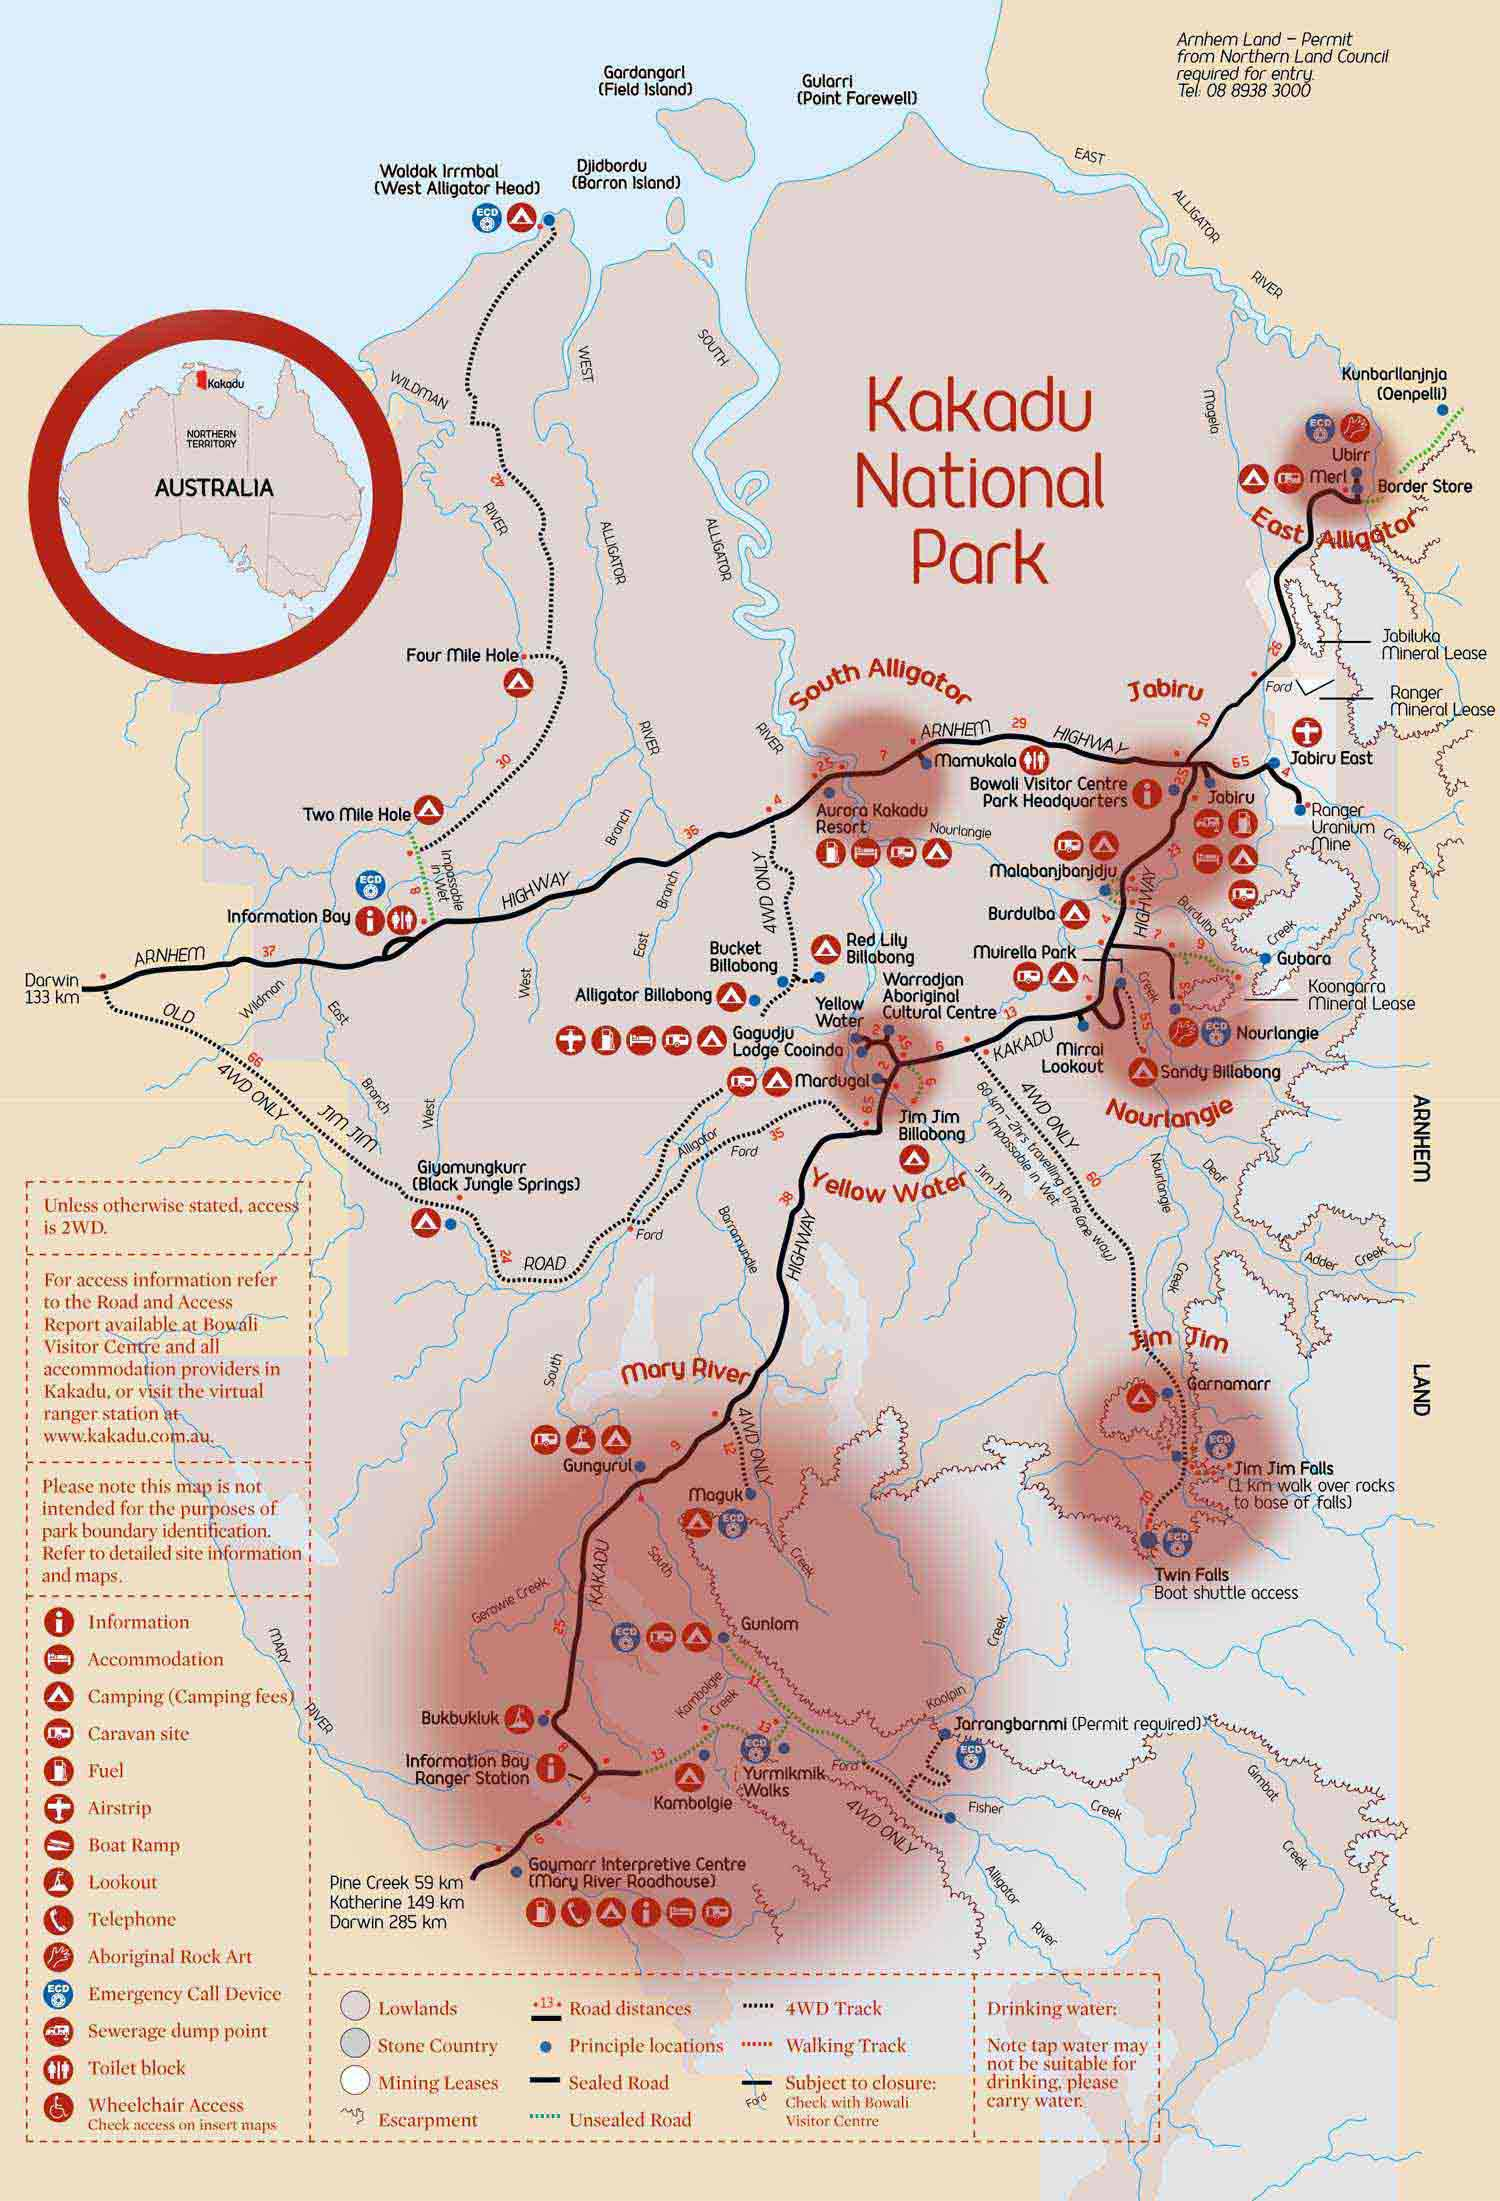 Kakadu National Park Map Exploring Kakadu National Park: Walking trail ideas